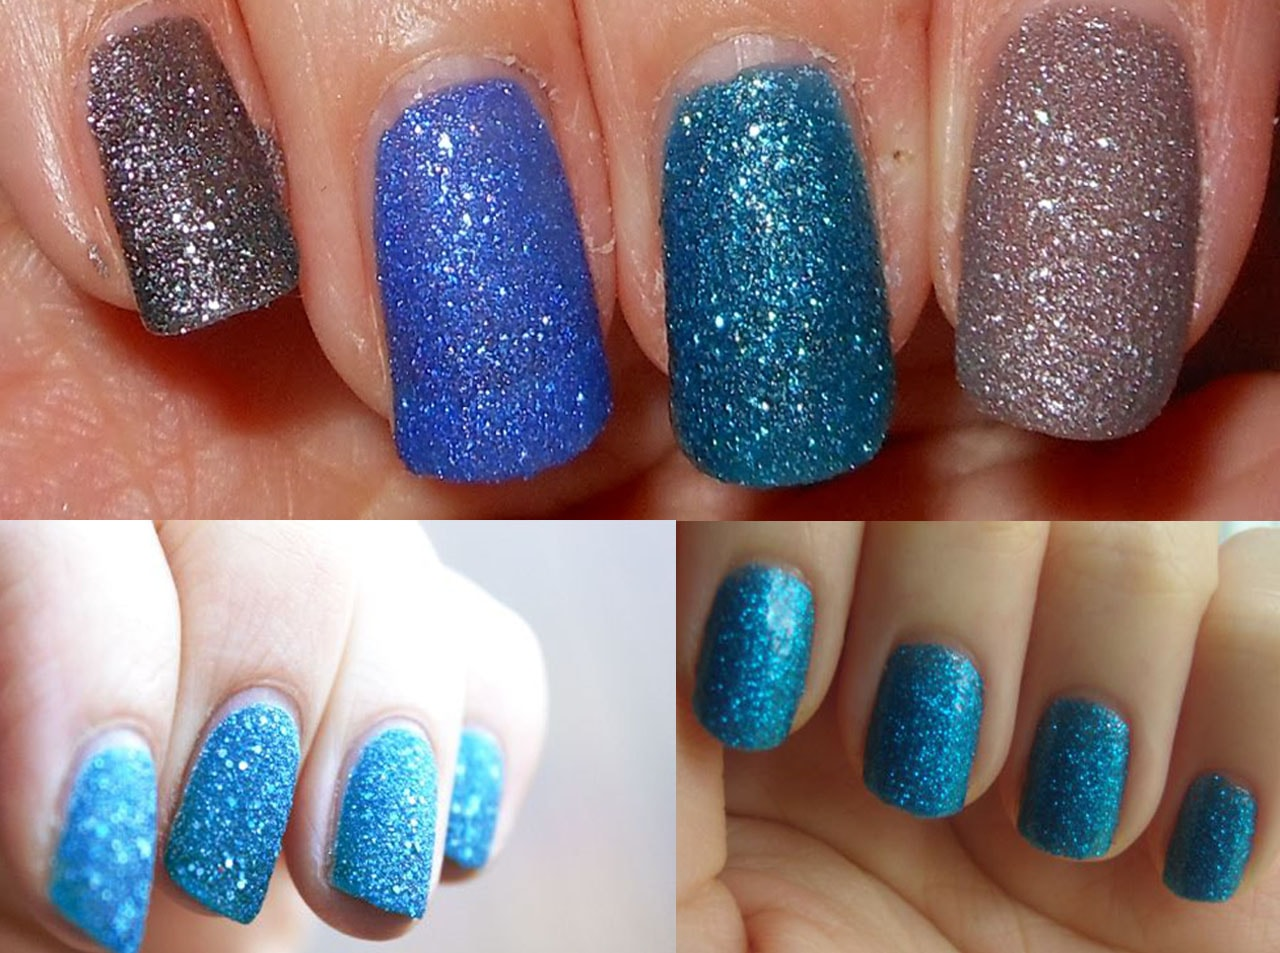 glitery-blue-mix-nail-art